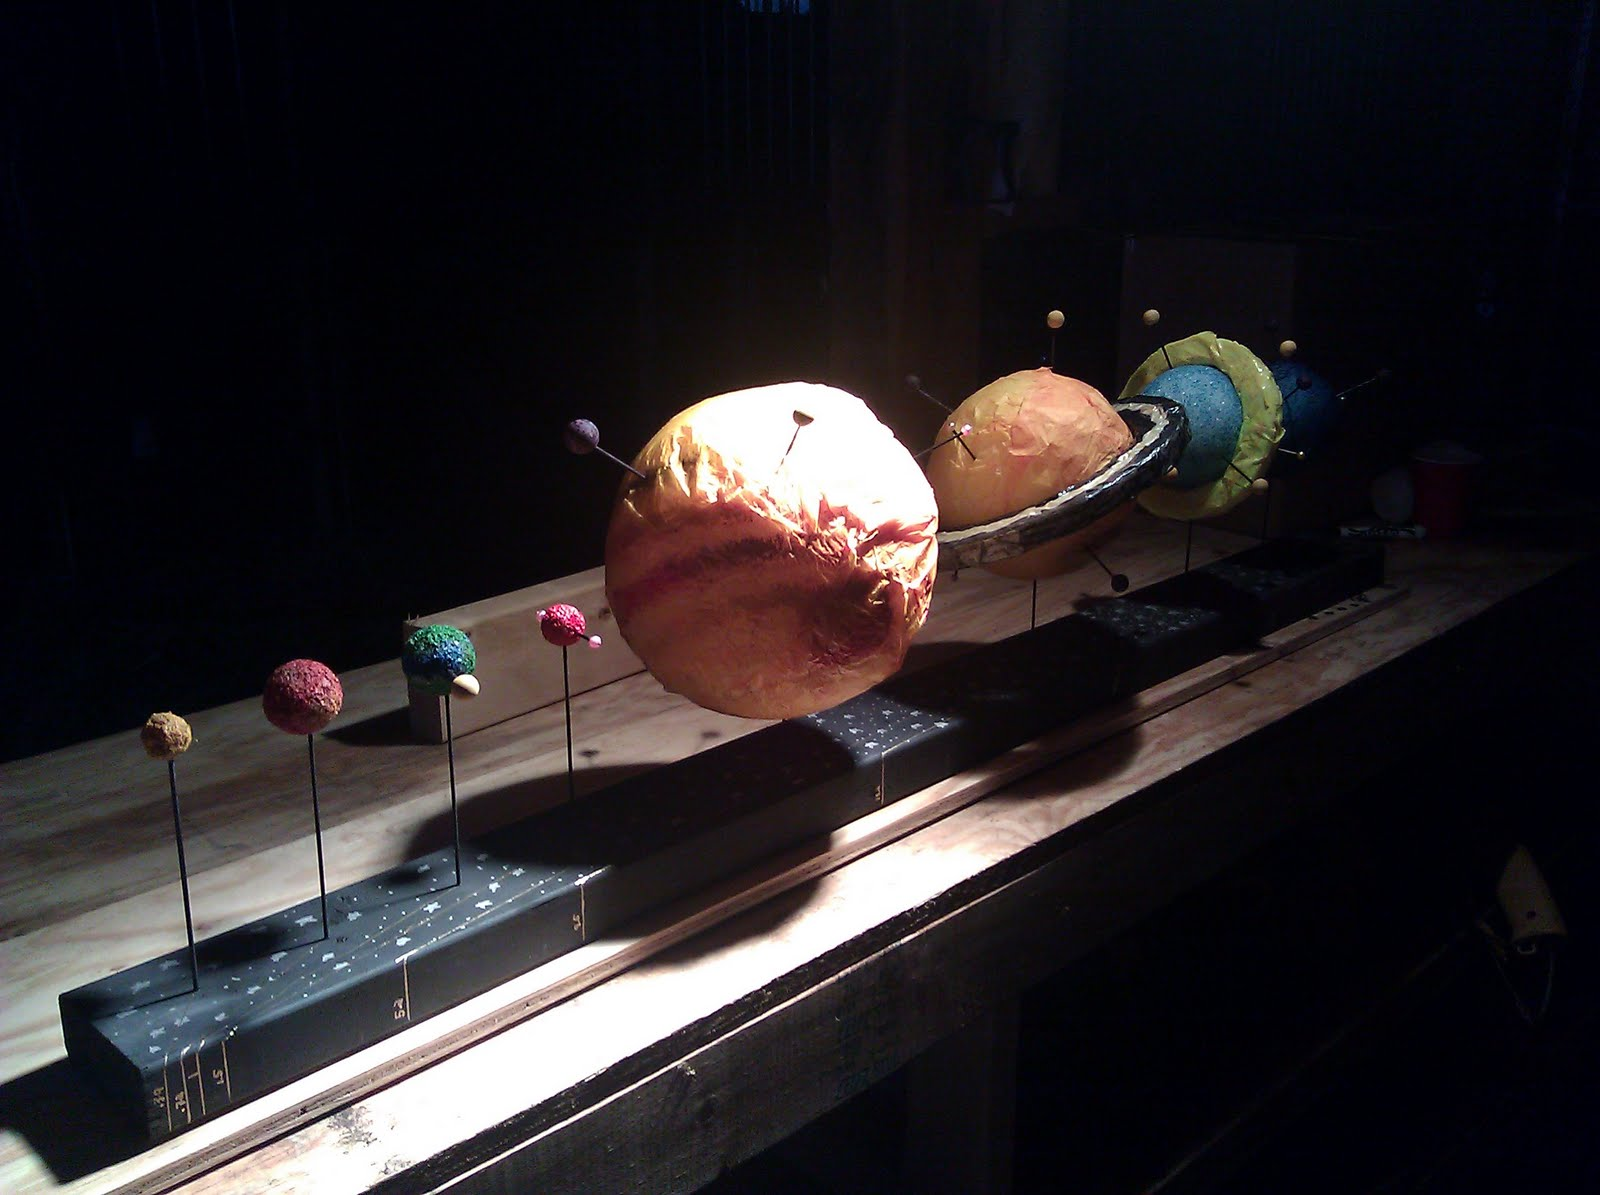 3d solar system school project - photo #12